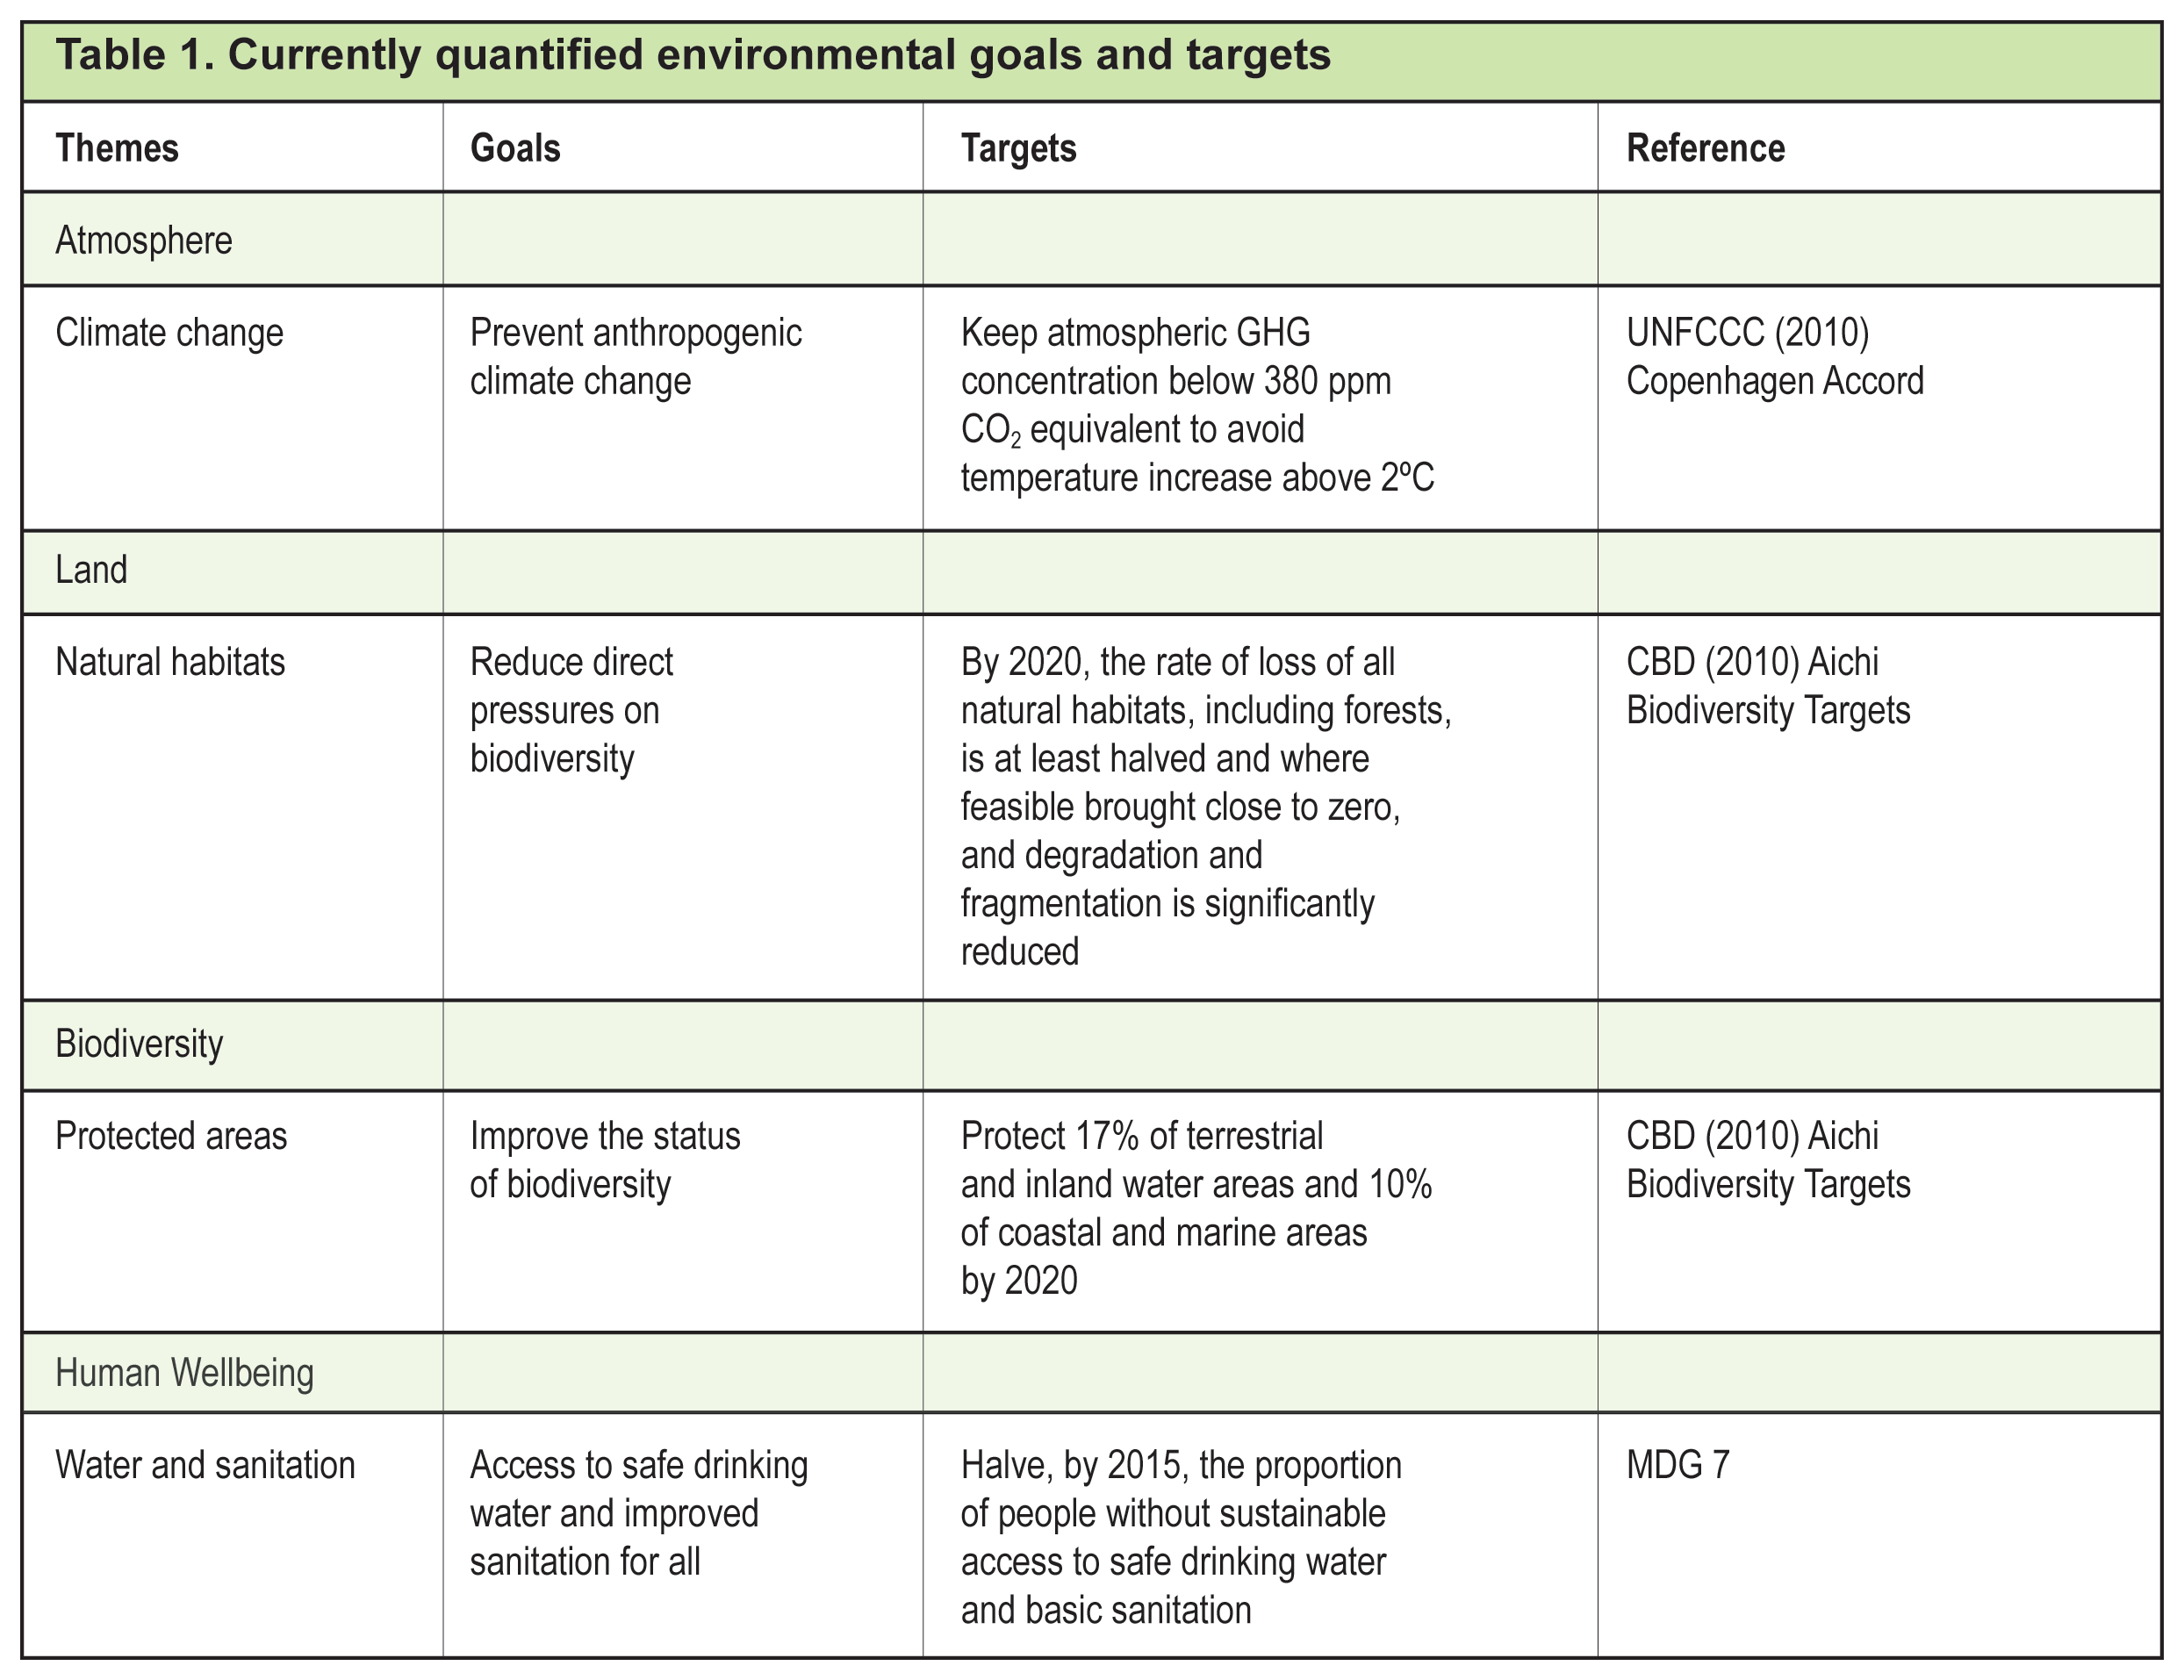 Full Size Image  sc 1 st  UNEP/GRID-Sioux Falls & The Need for Numbers-Goals Targets and Indicators for the Environment